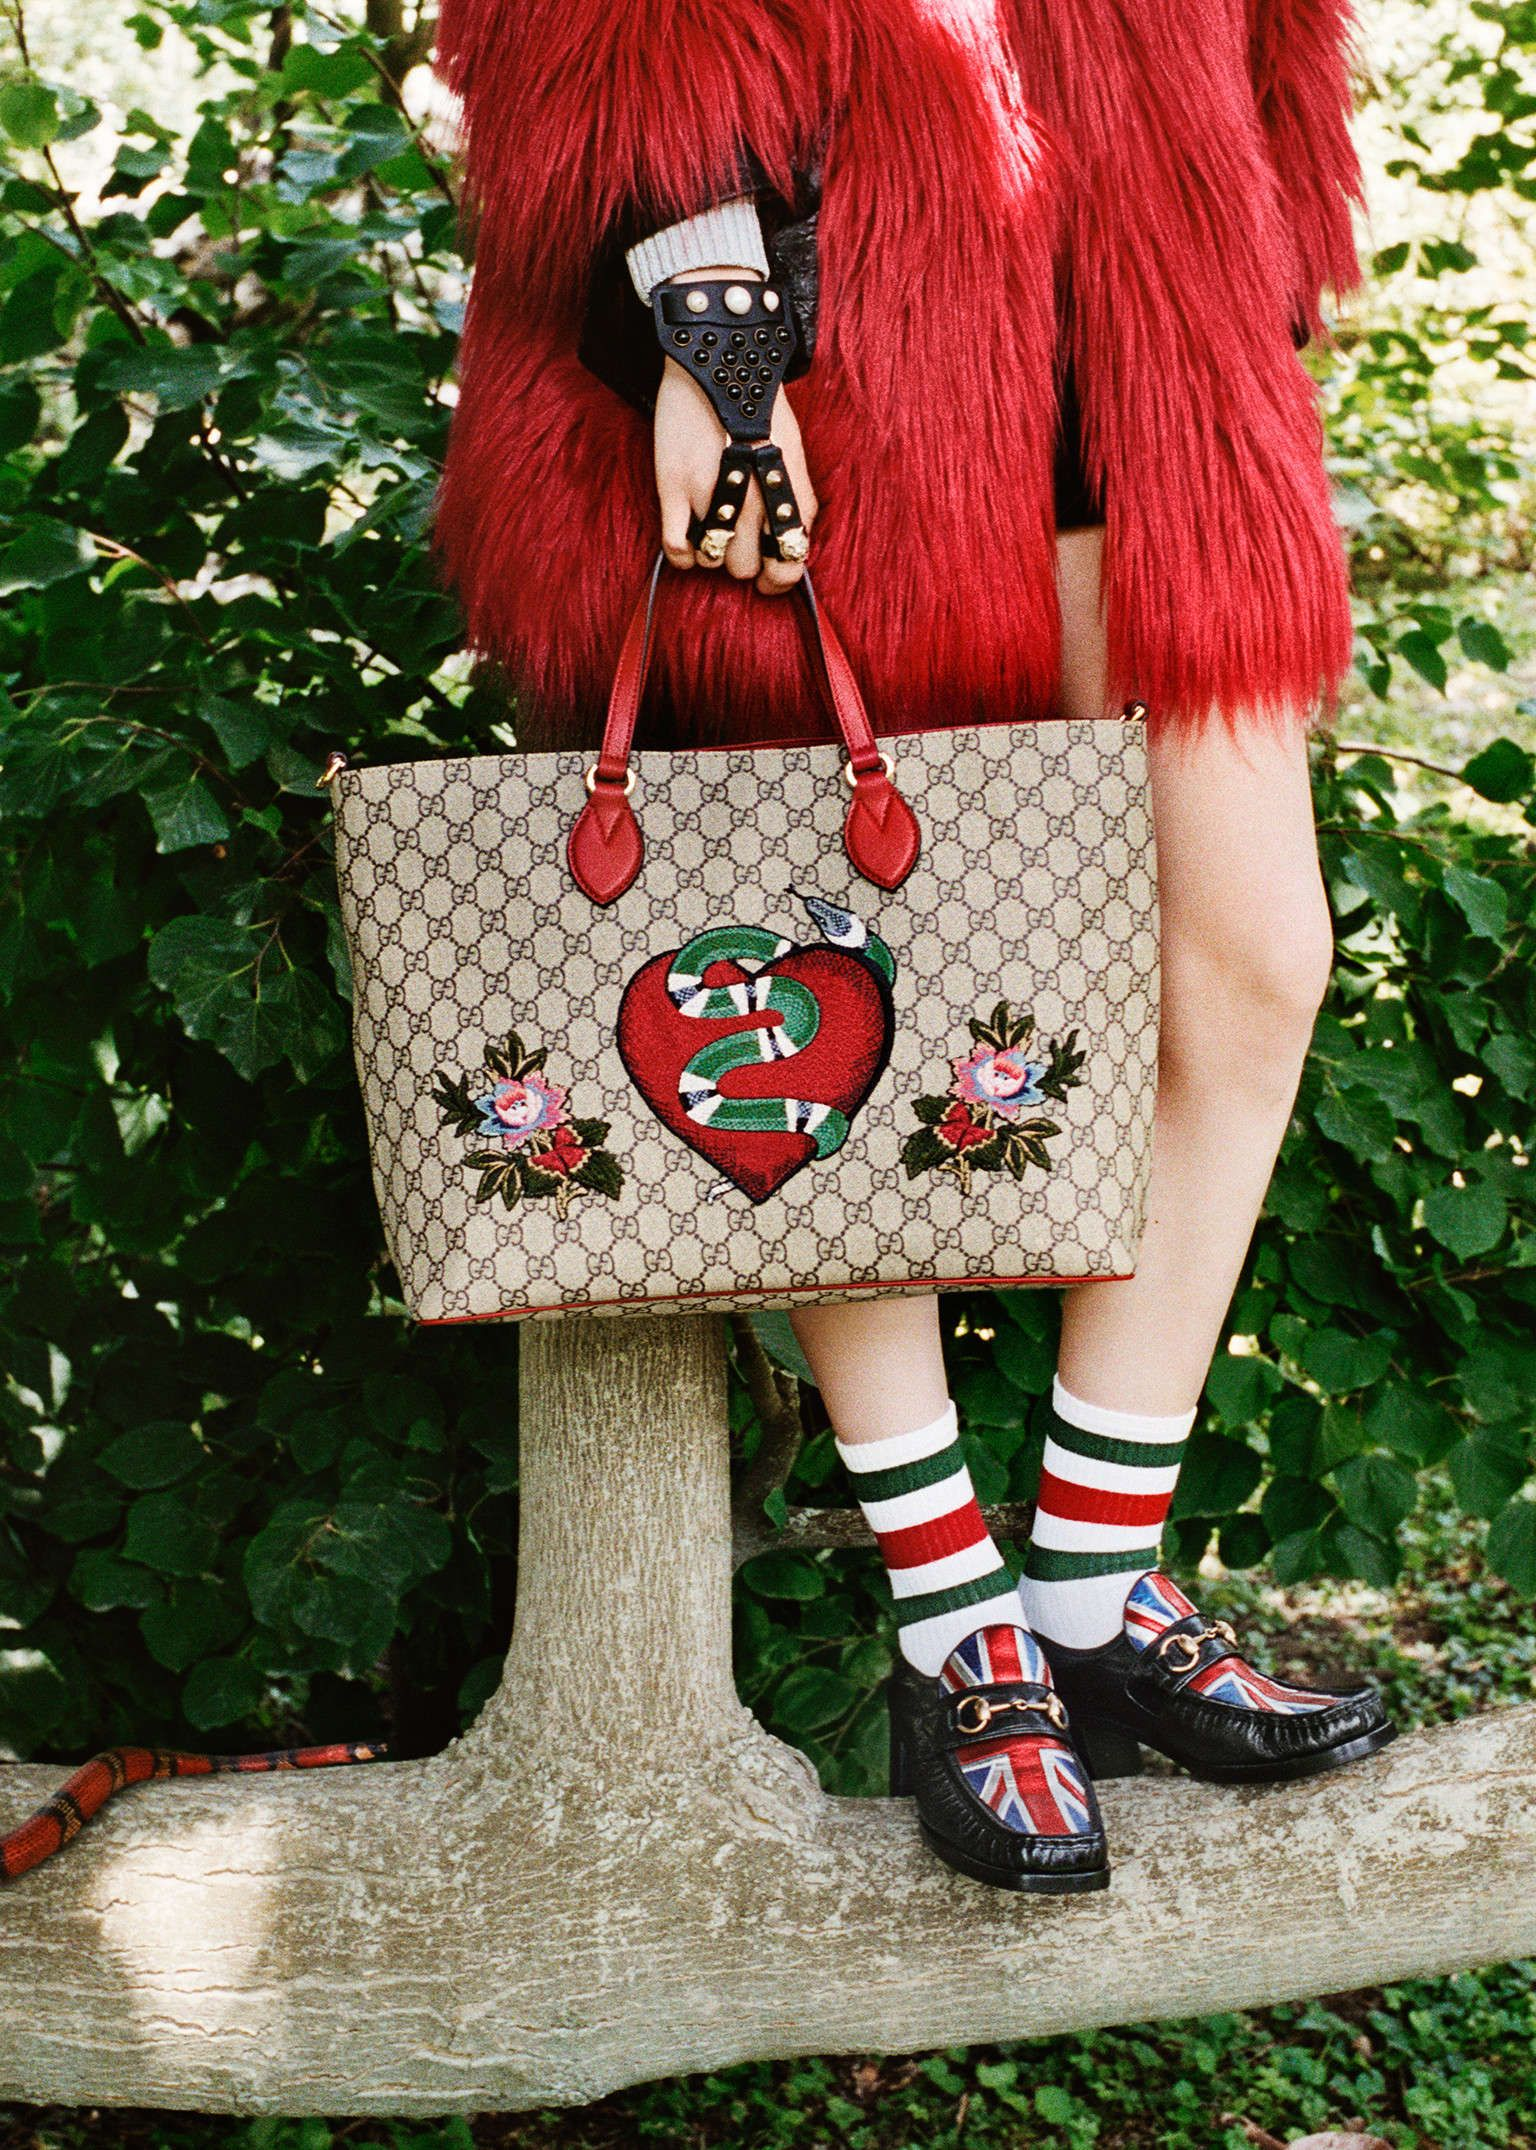 fa5637c21 Gift Giving 2016  The Gucci Garden - Gucci Stories